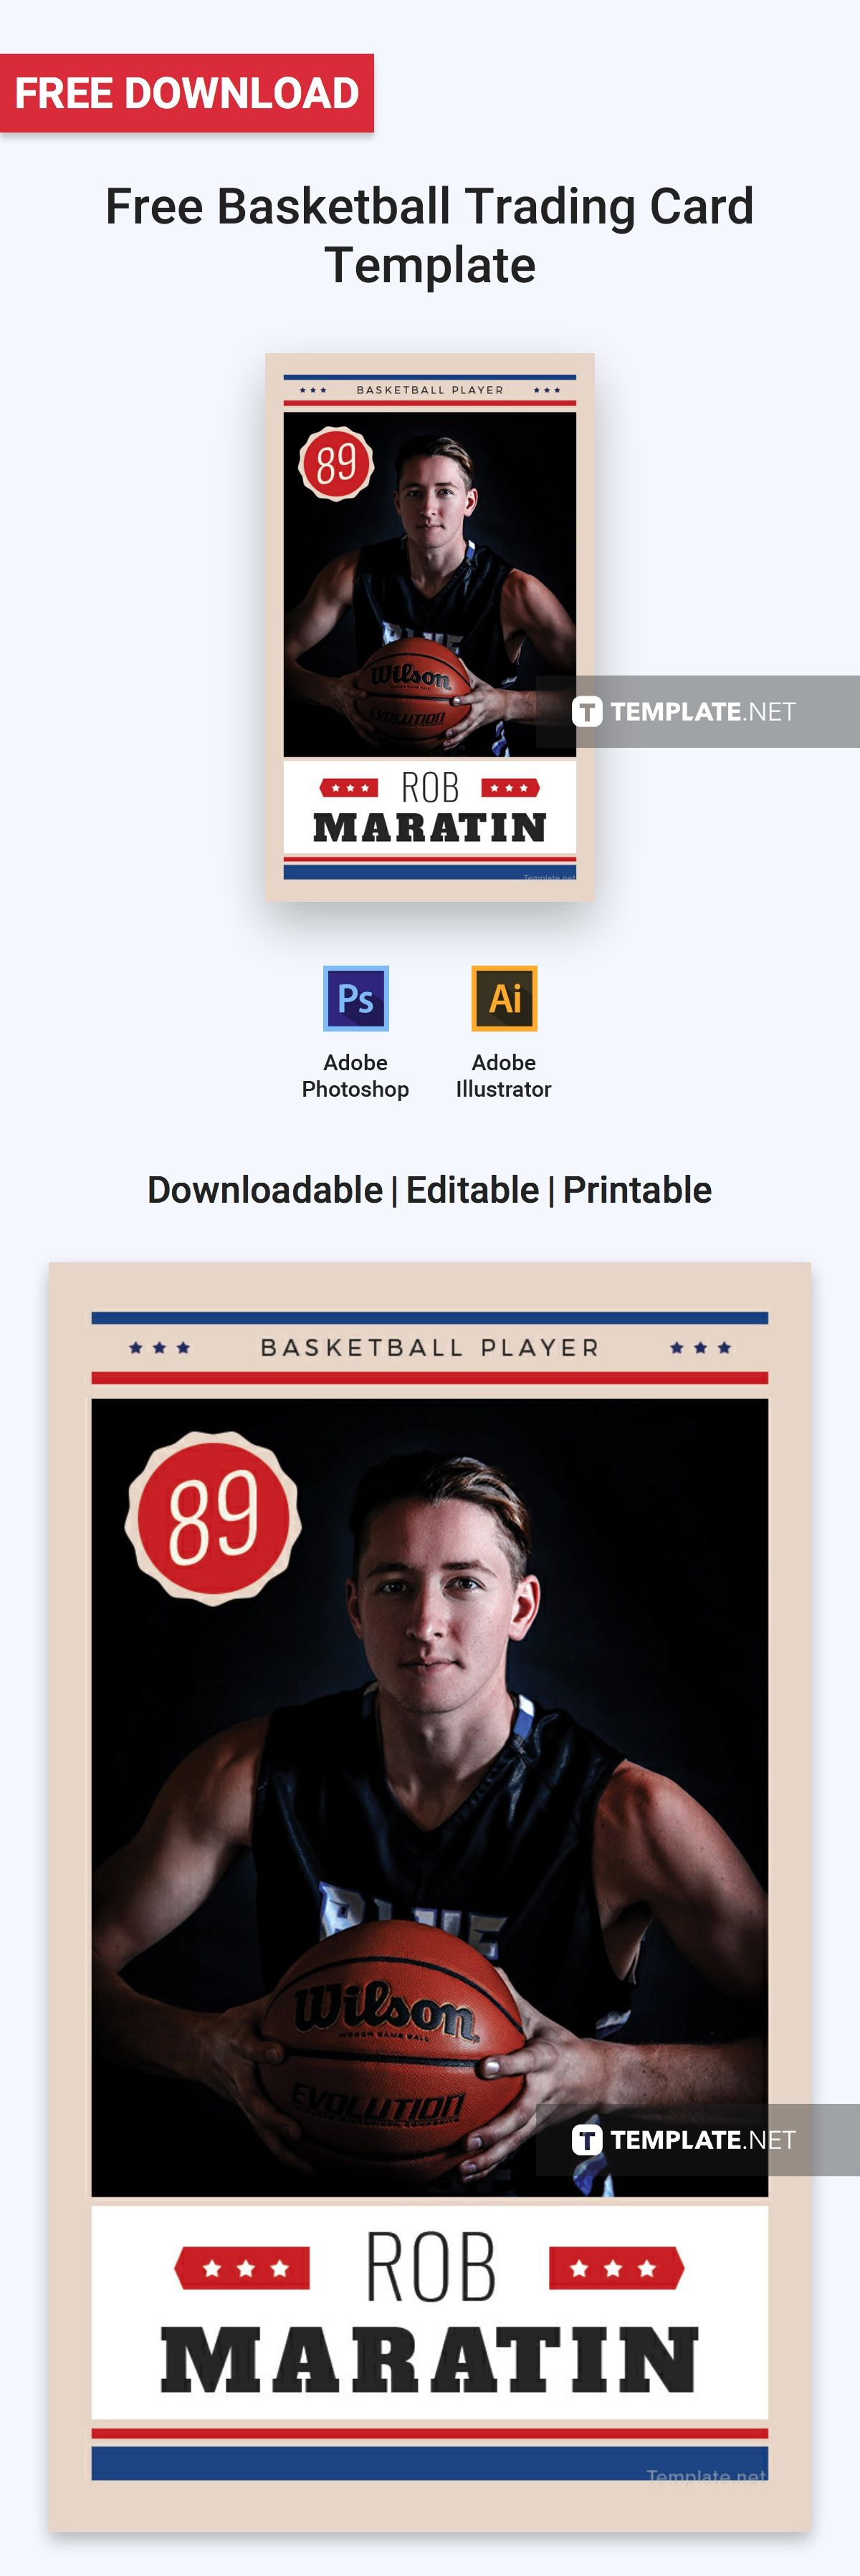 Basketball Trading Card Template Free Pdf Word Psd Apple Pages Illustrator Publisher Trading Card Template Free Basketball Baseball Card Template